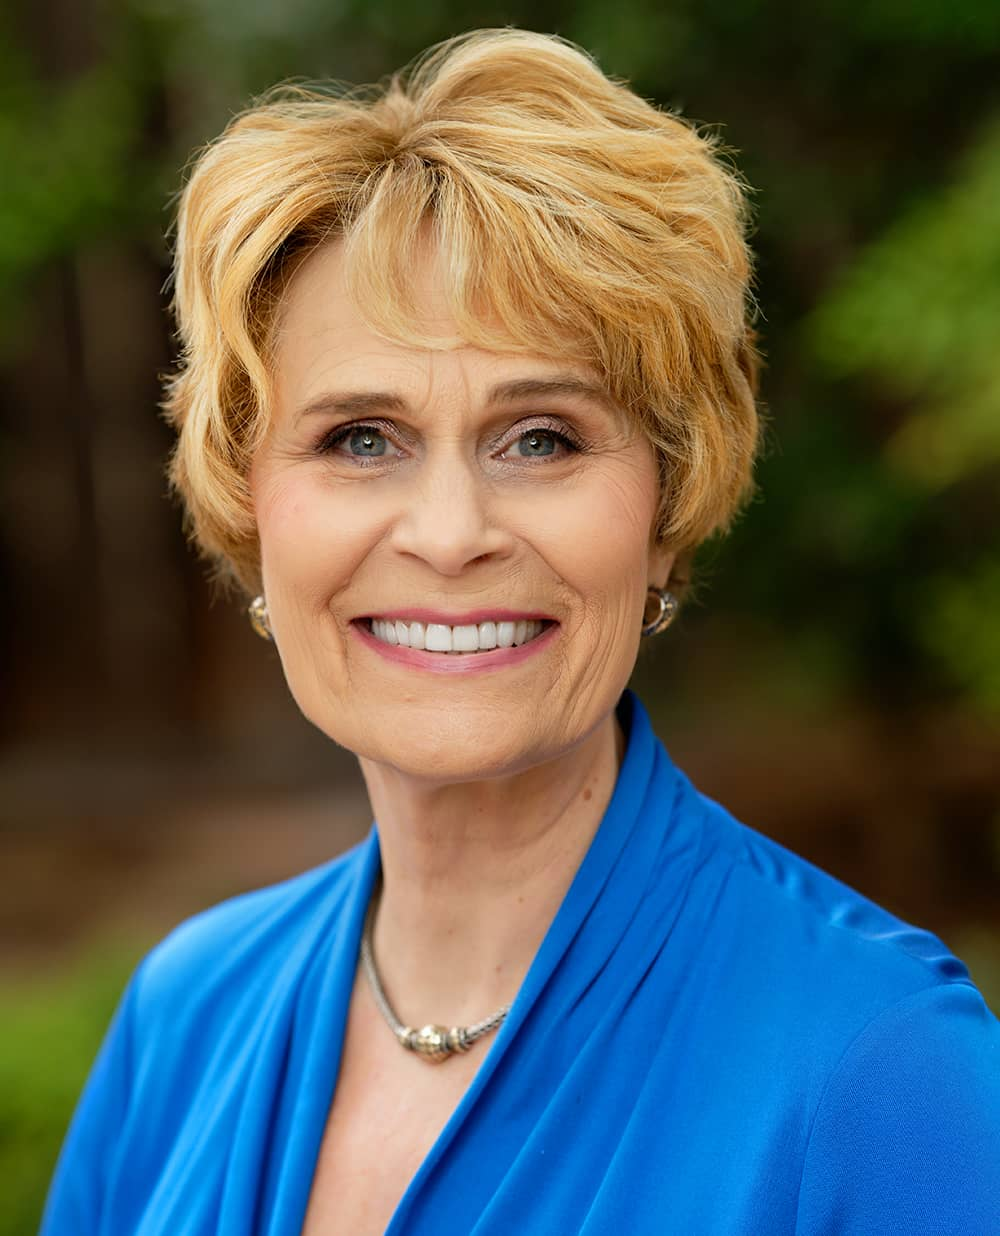 Mary PIzzimenti, Sierra Foothills Luxury Real Estate Specialist, Broker & Founder of PHA Realty